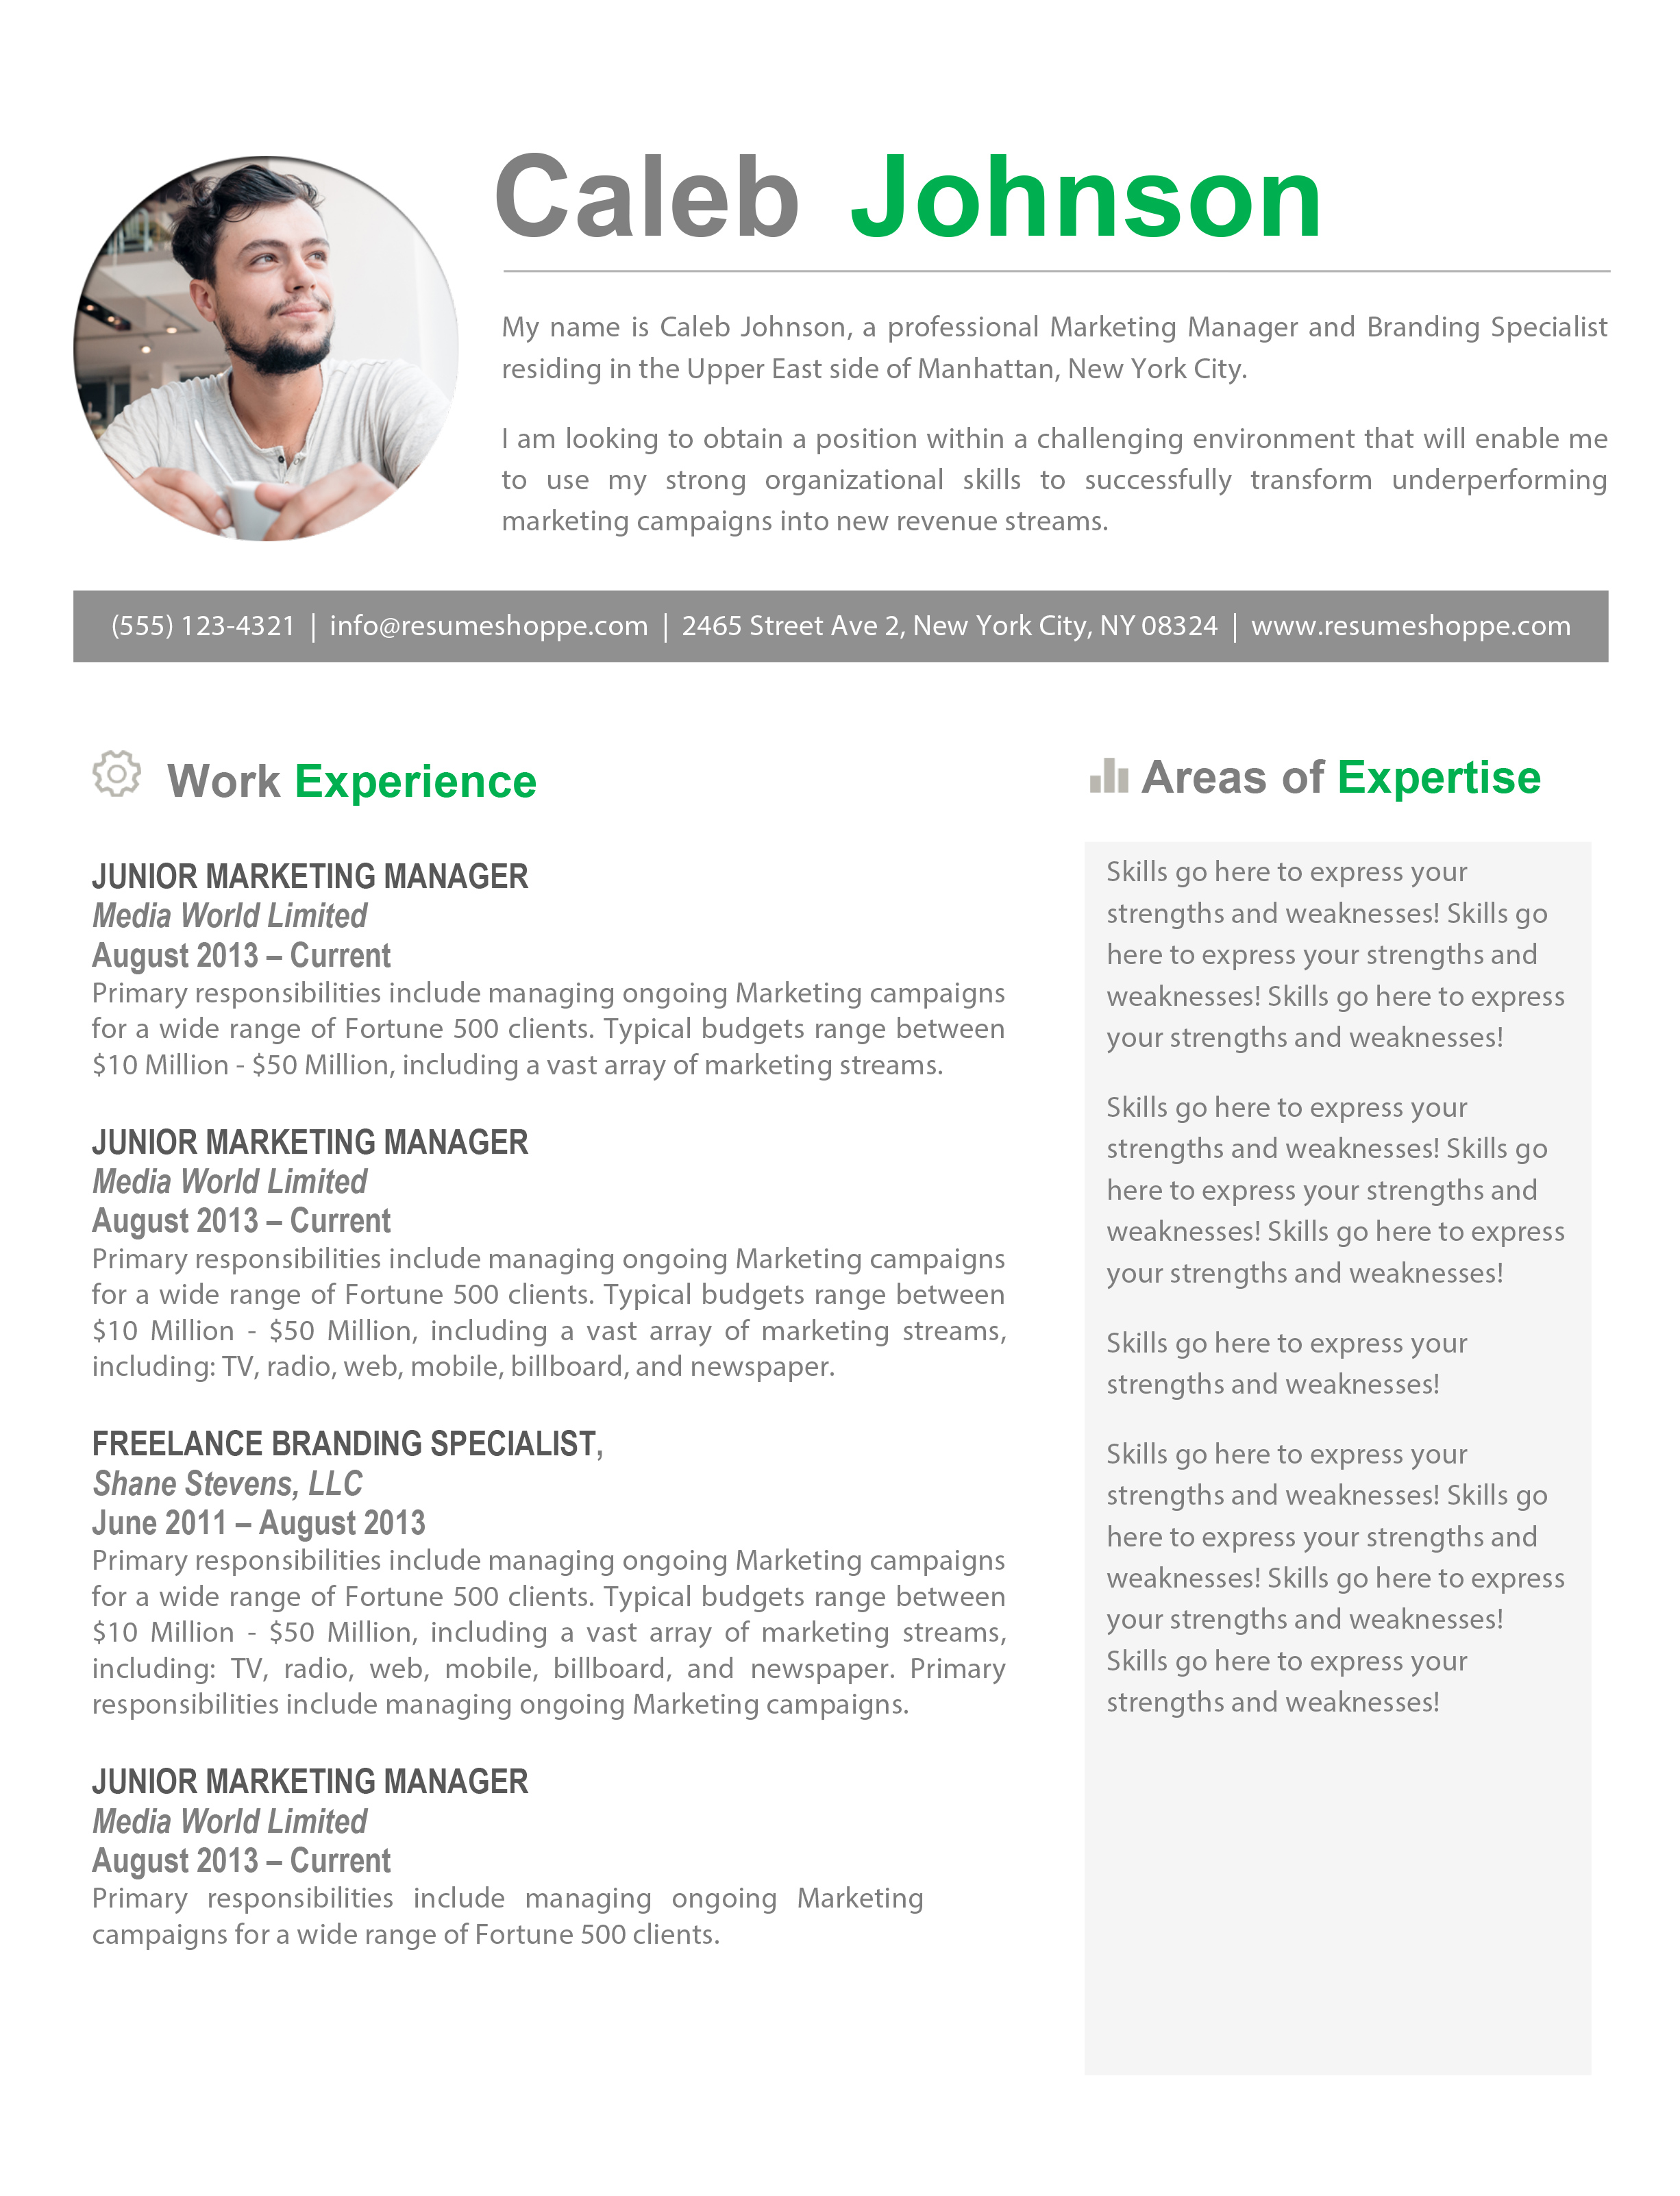 creative resume templates secure the job resumeshoppe the caleb resume 1